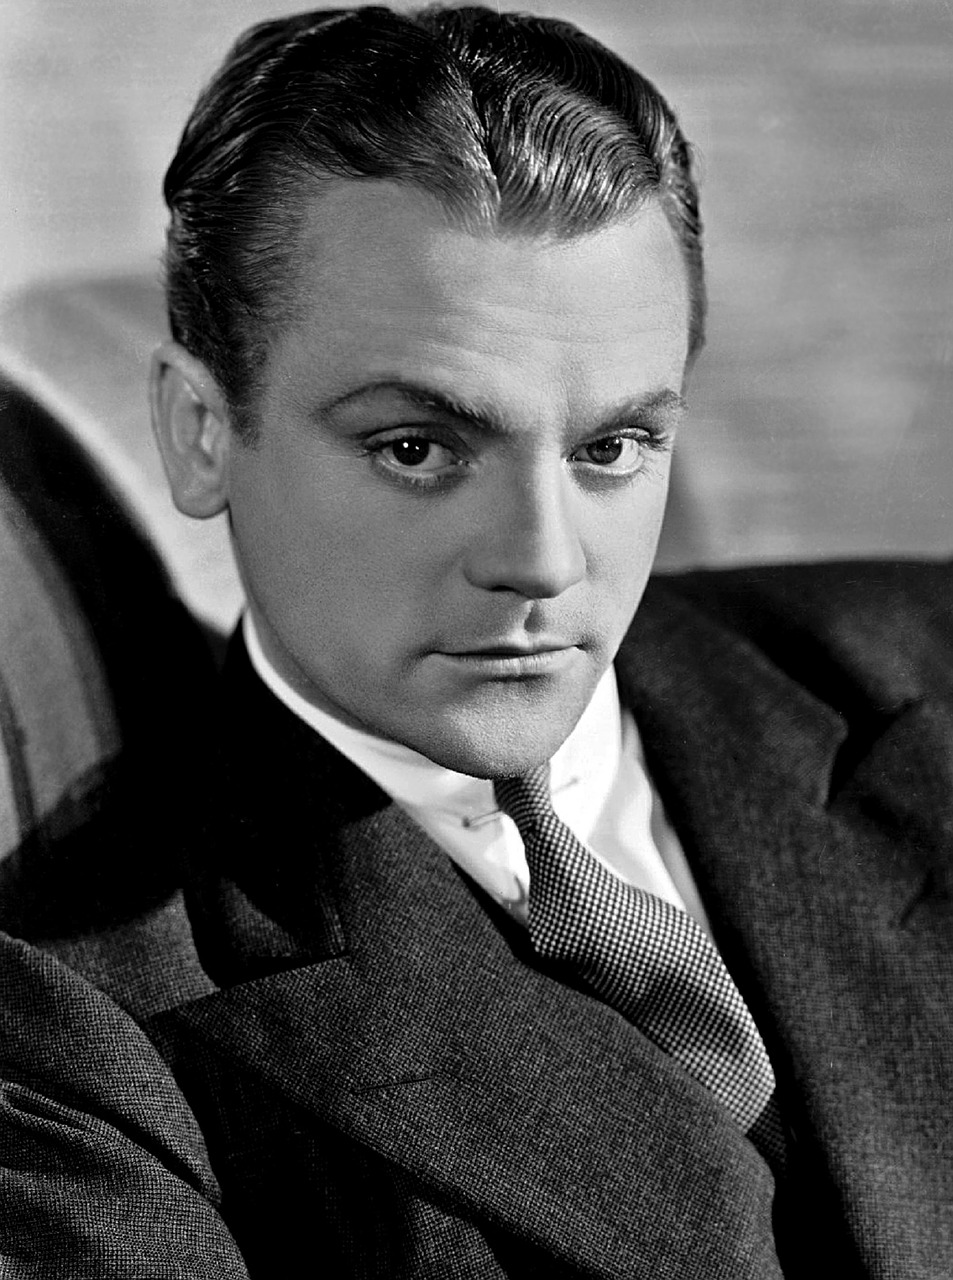 james cagney,star,publicity,man,person,portrait,famous,black and white,monochrome,motion pictures,film,hollywood,celebrity,actor,jimmy cagney,james,history,vintage,movie,free pictures, free photos, free images, royalty free, free illustrations, public domain